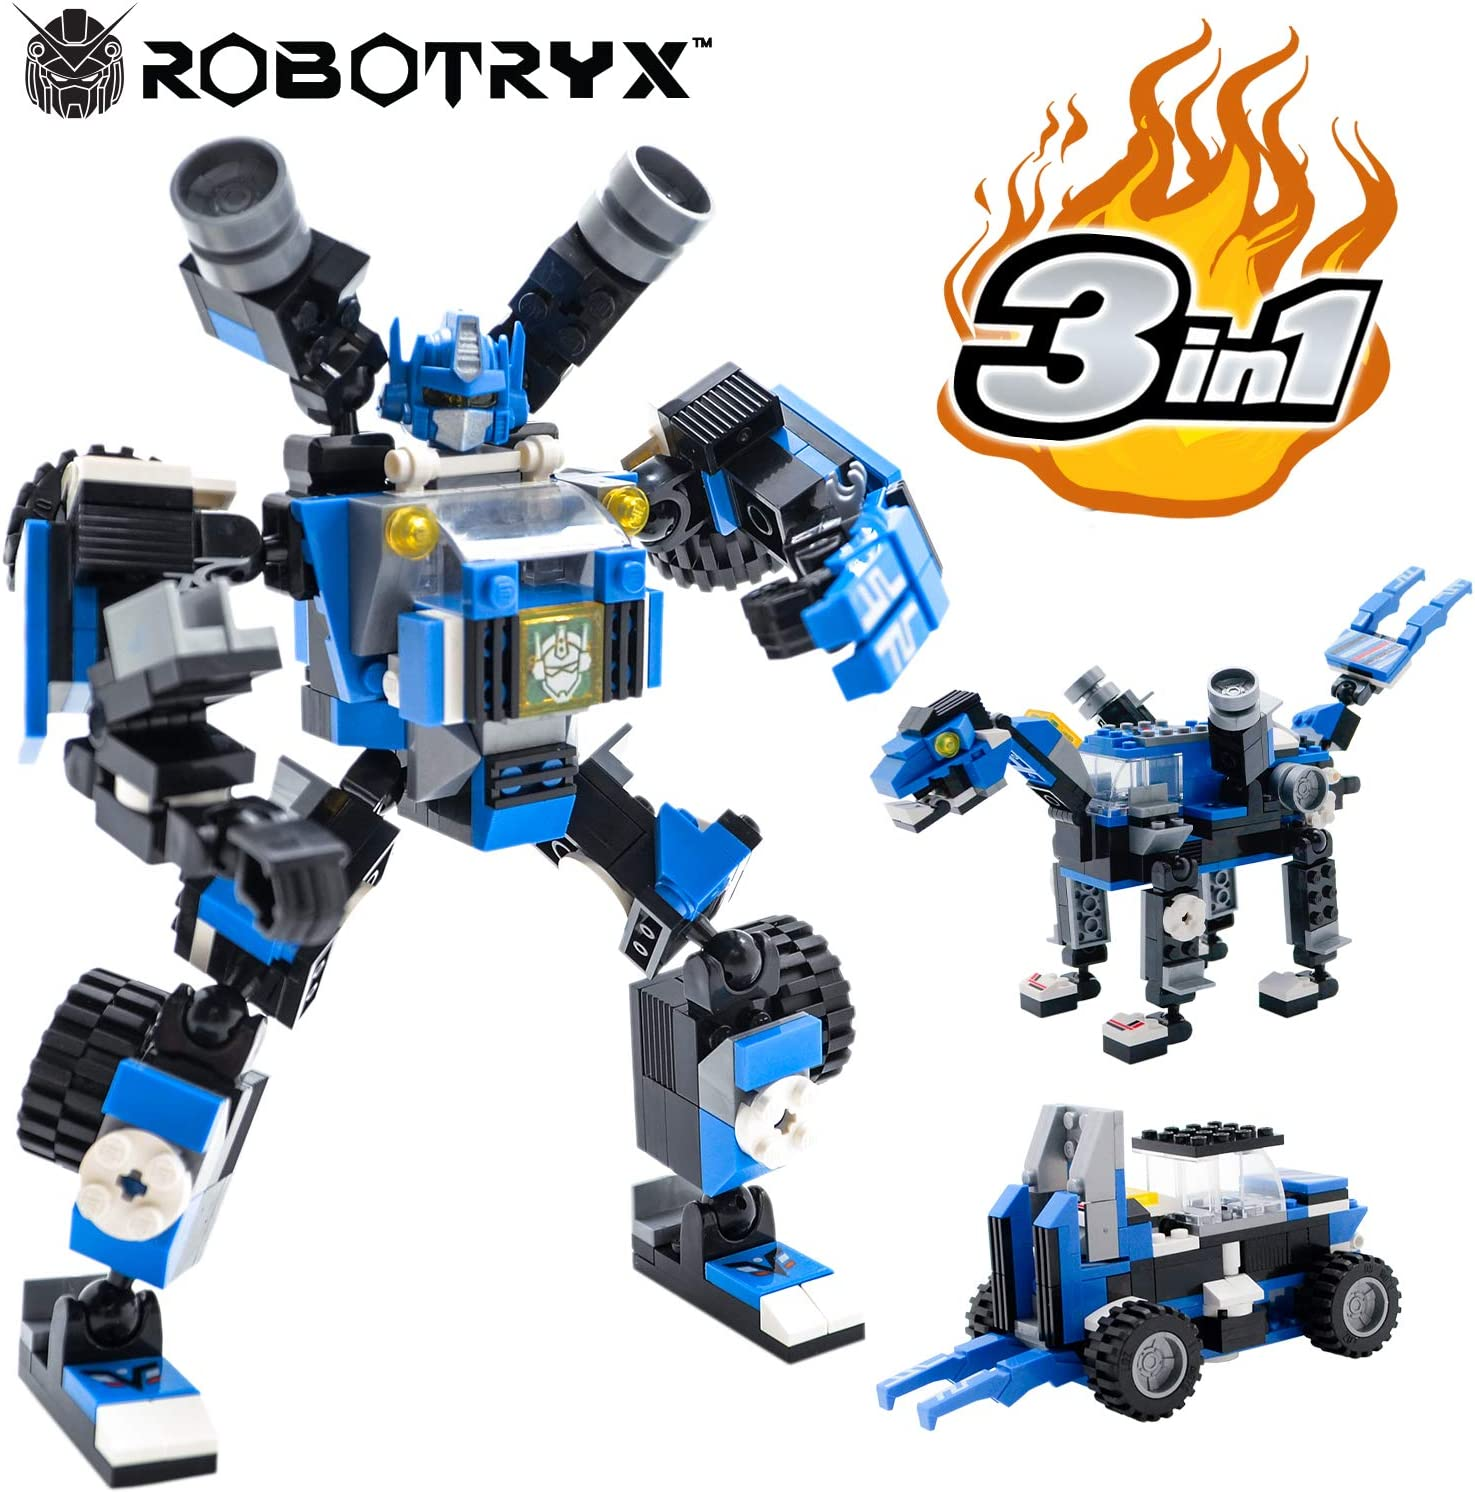 JITTERYGIT Robot STEM Toy Figure   3 in 1 Fun Creative Set   Construction Building Toys for Boys and Girls Ages 6-14 Years Old   Best Toy Gift for Kids   Free Poster Kit Included